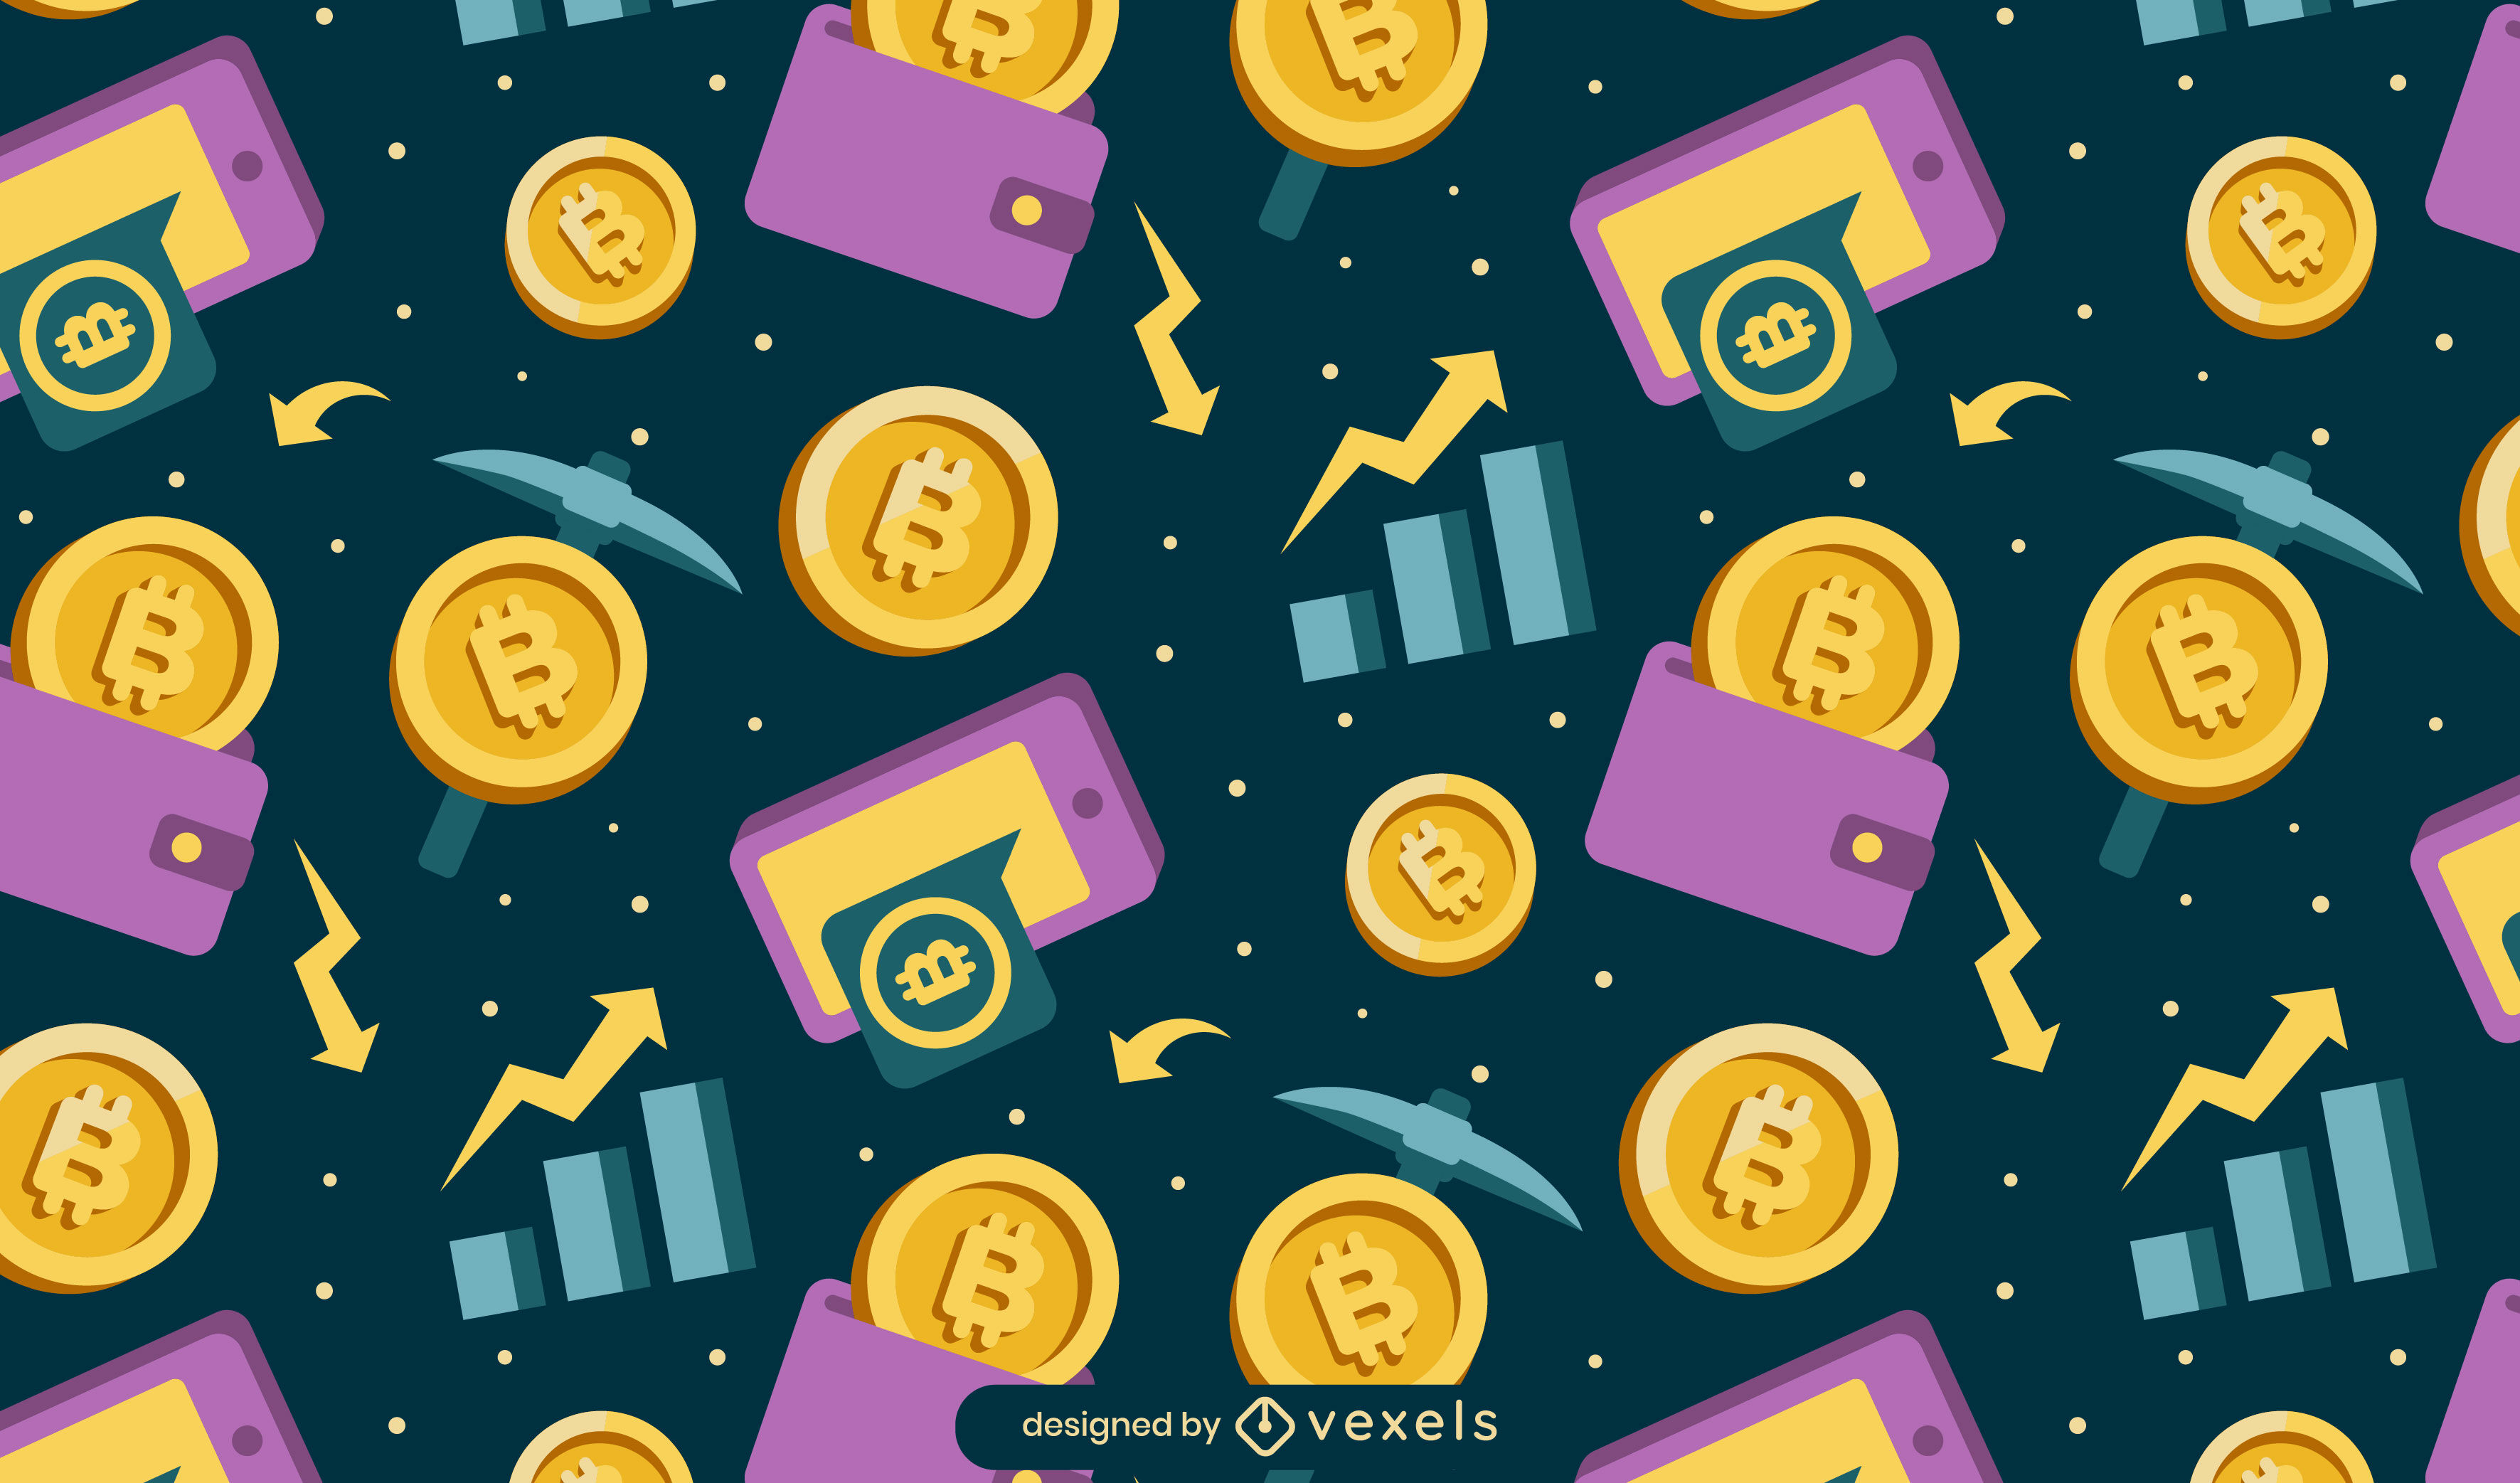 Bitcoin cryptocurrency coins pattern design